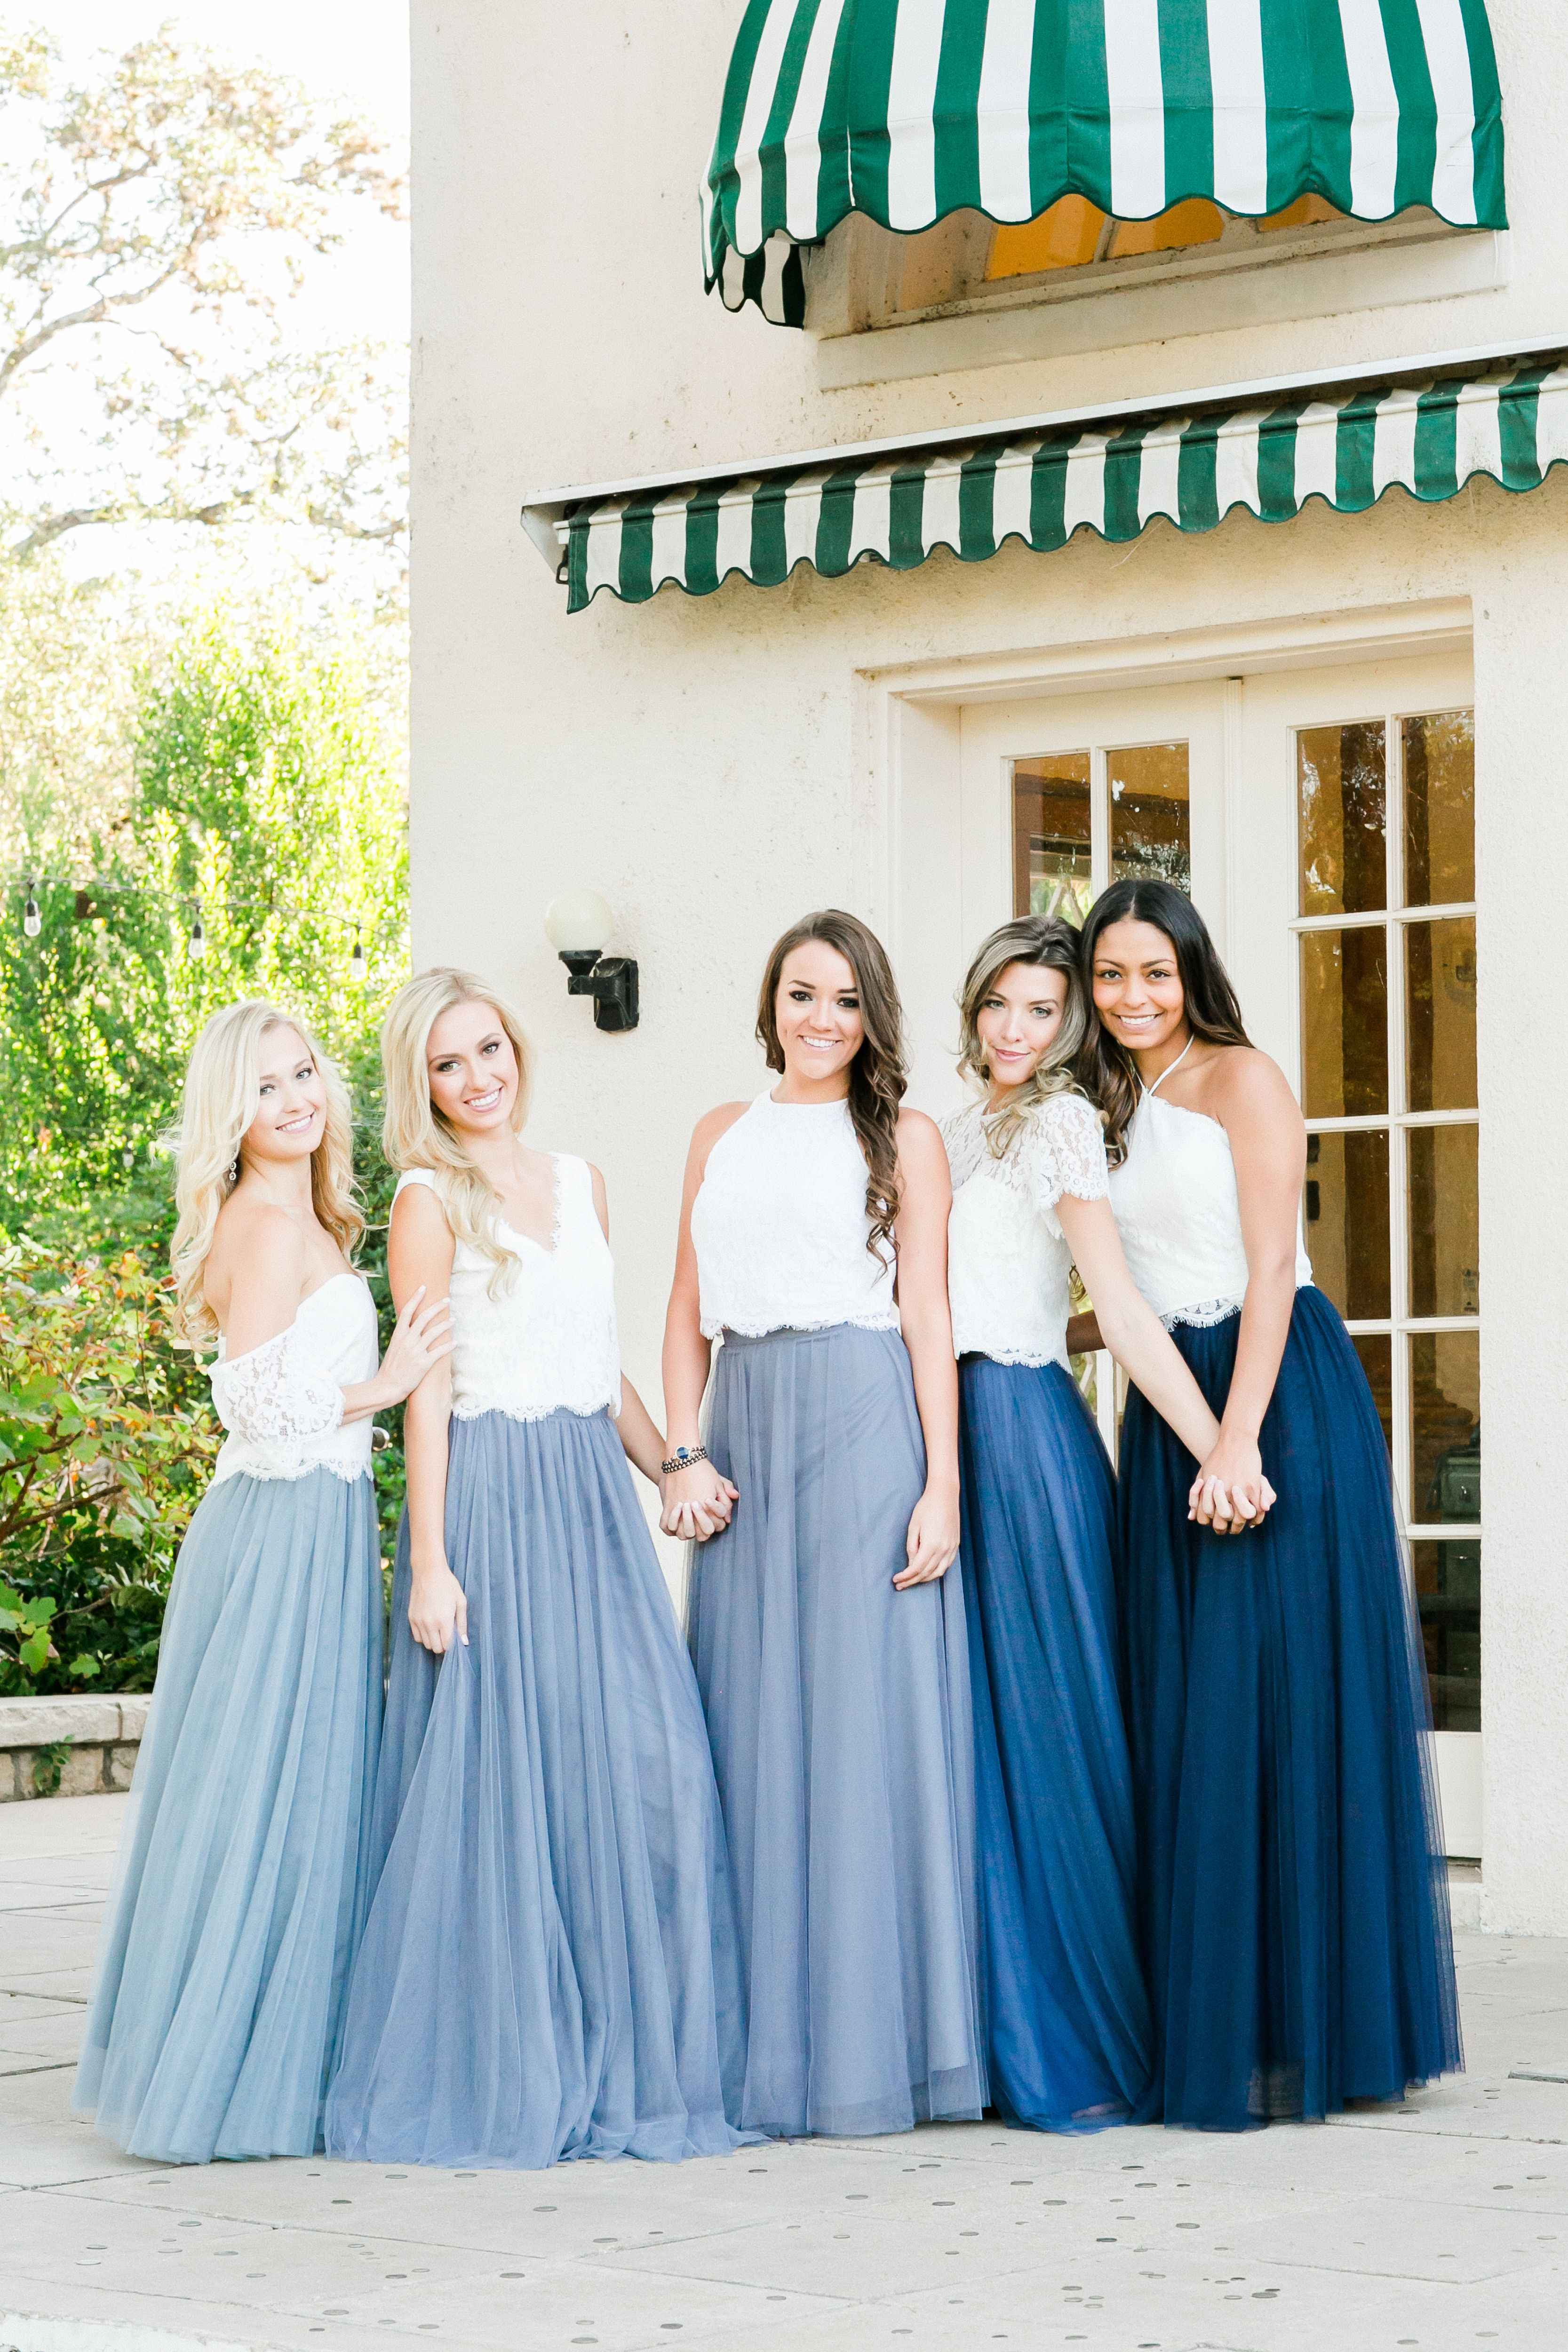 cost charm authentic top-rated fashion Mix and Match Revelry Bridesmaid Dresses and Separates ...